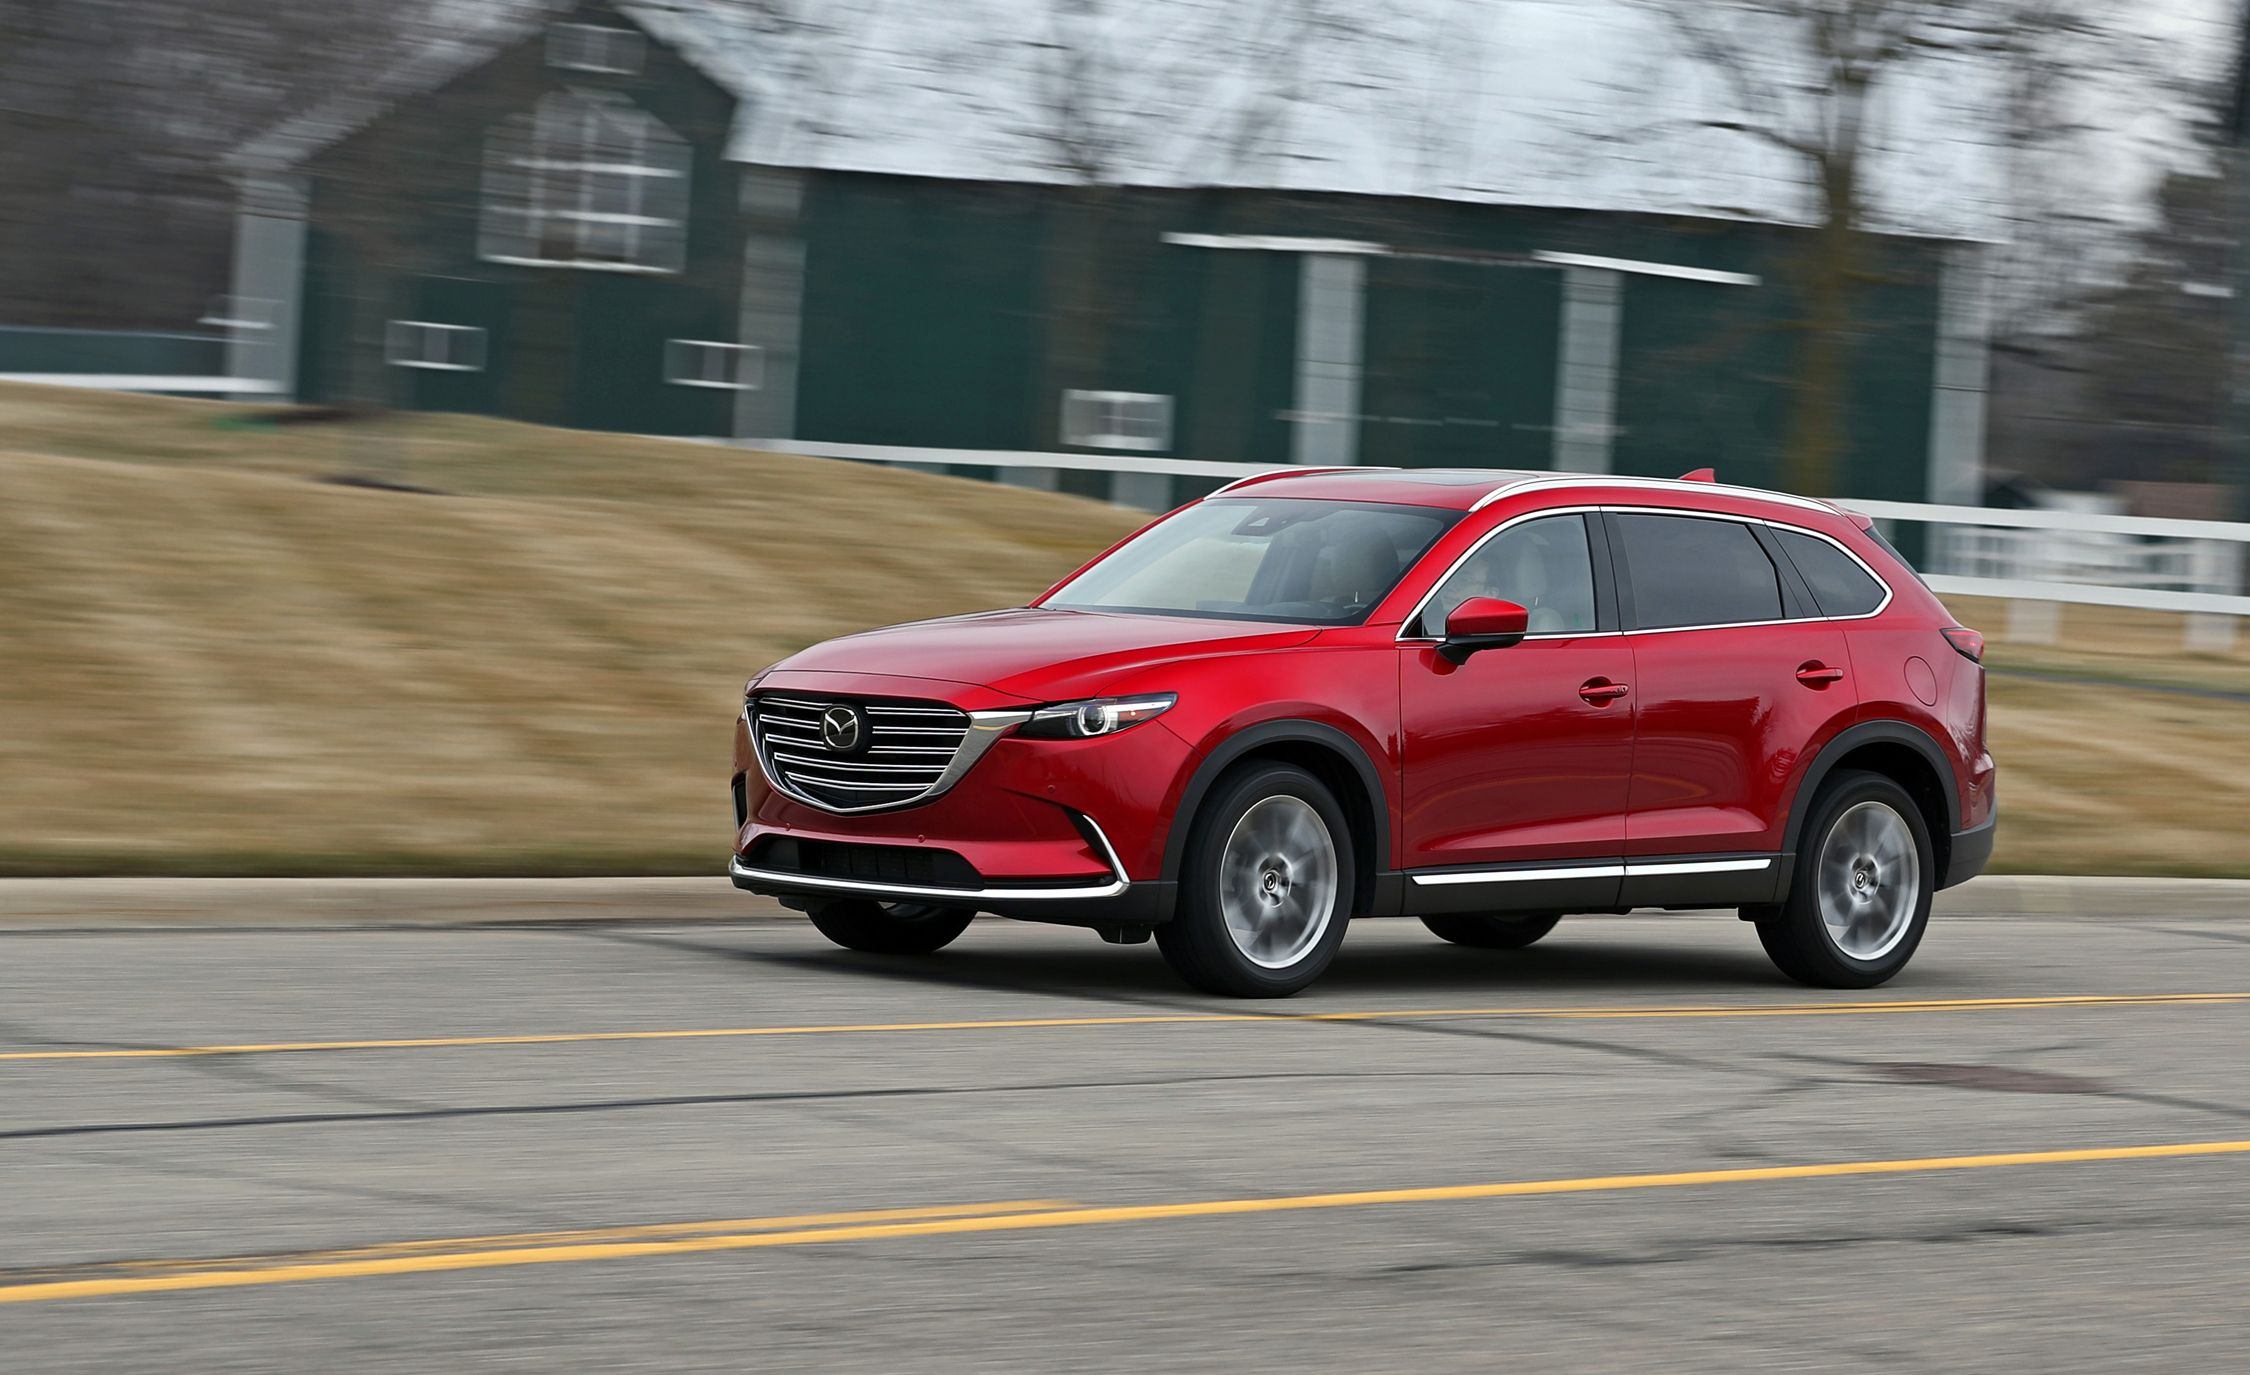 Mazda CX-9 Reviews | Mazda CX-9 Price, Photos, and Specs | Car and Driver